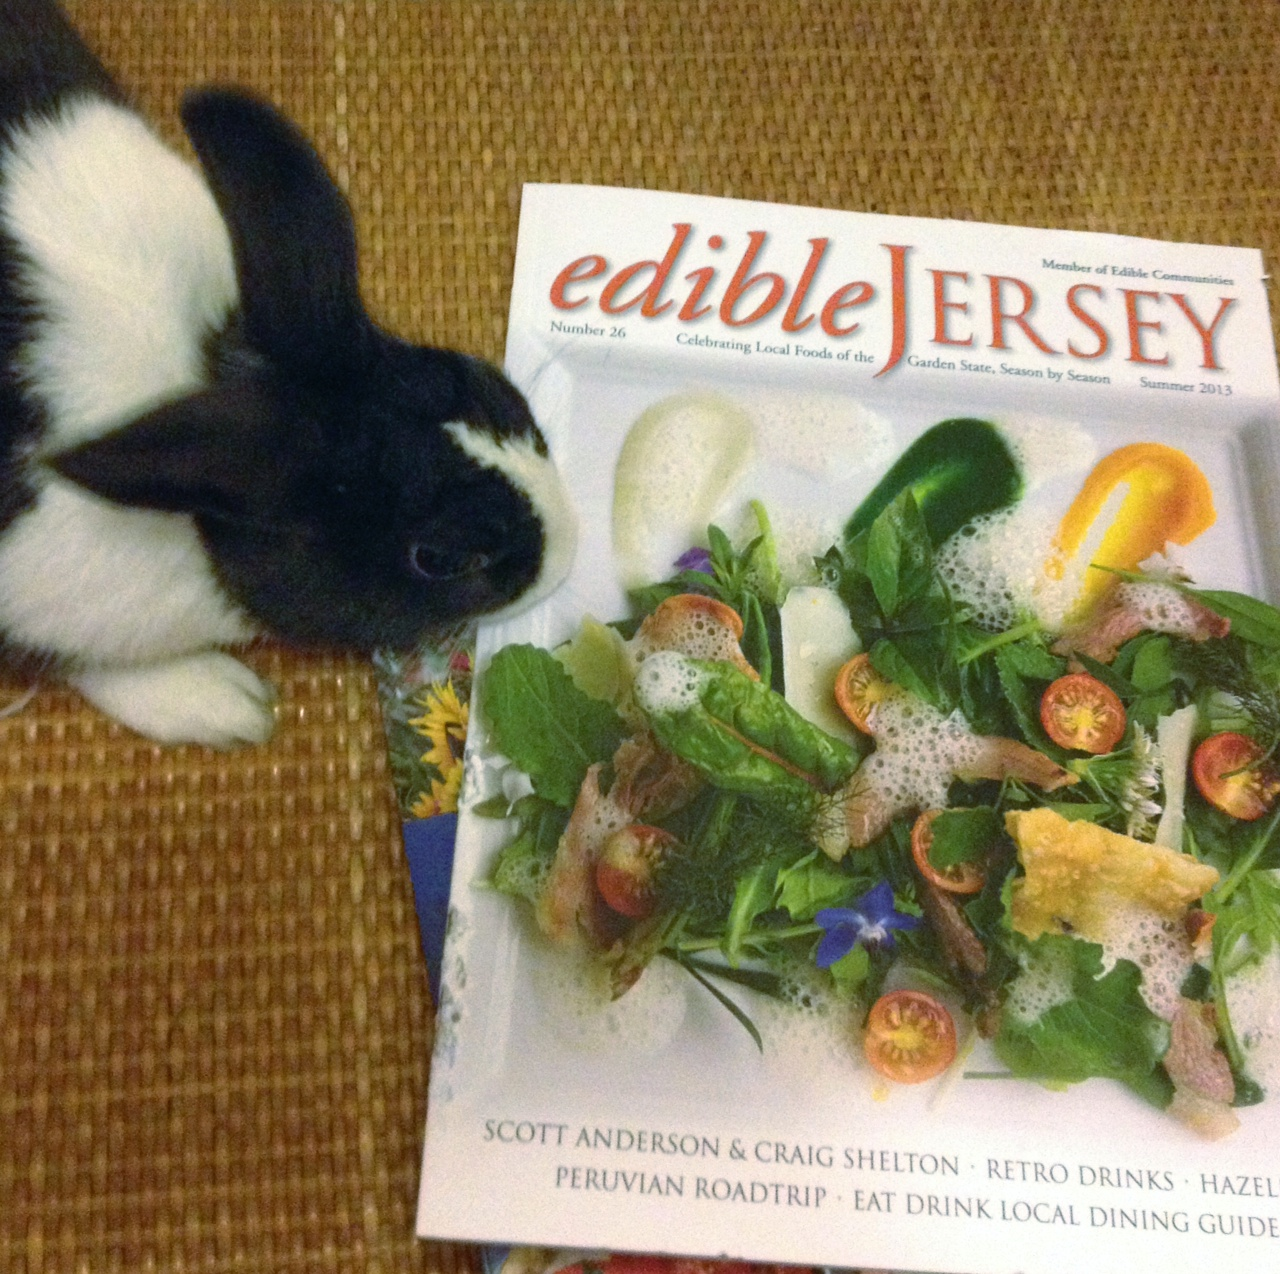 Bunny, Edible Magazine Isn't Meant to be Actually Eaten